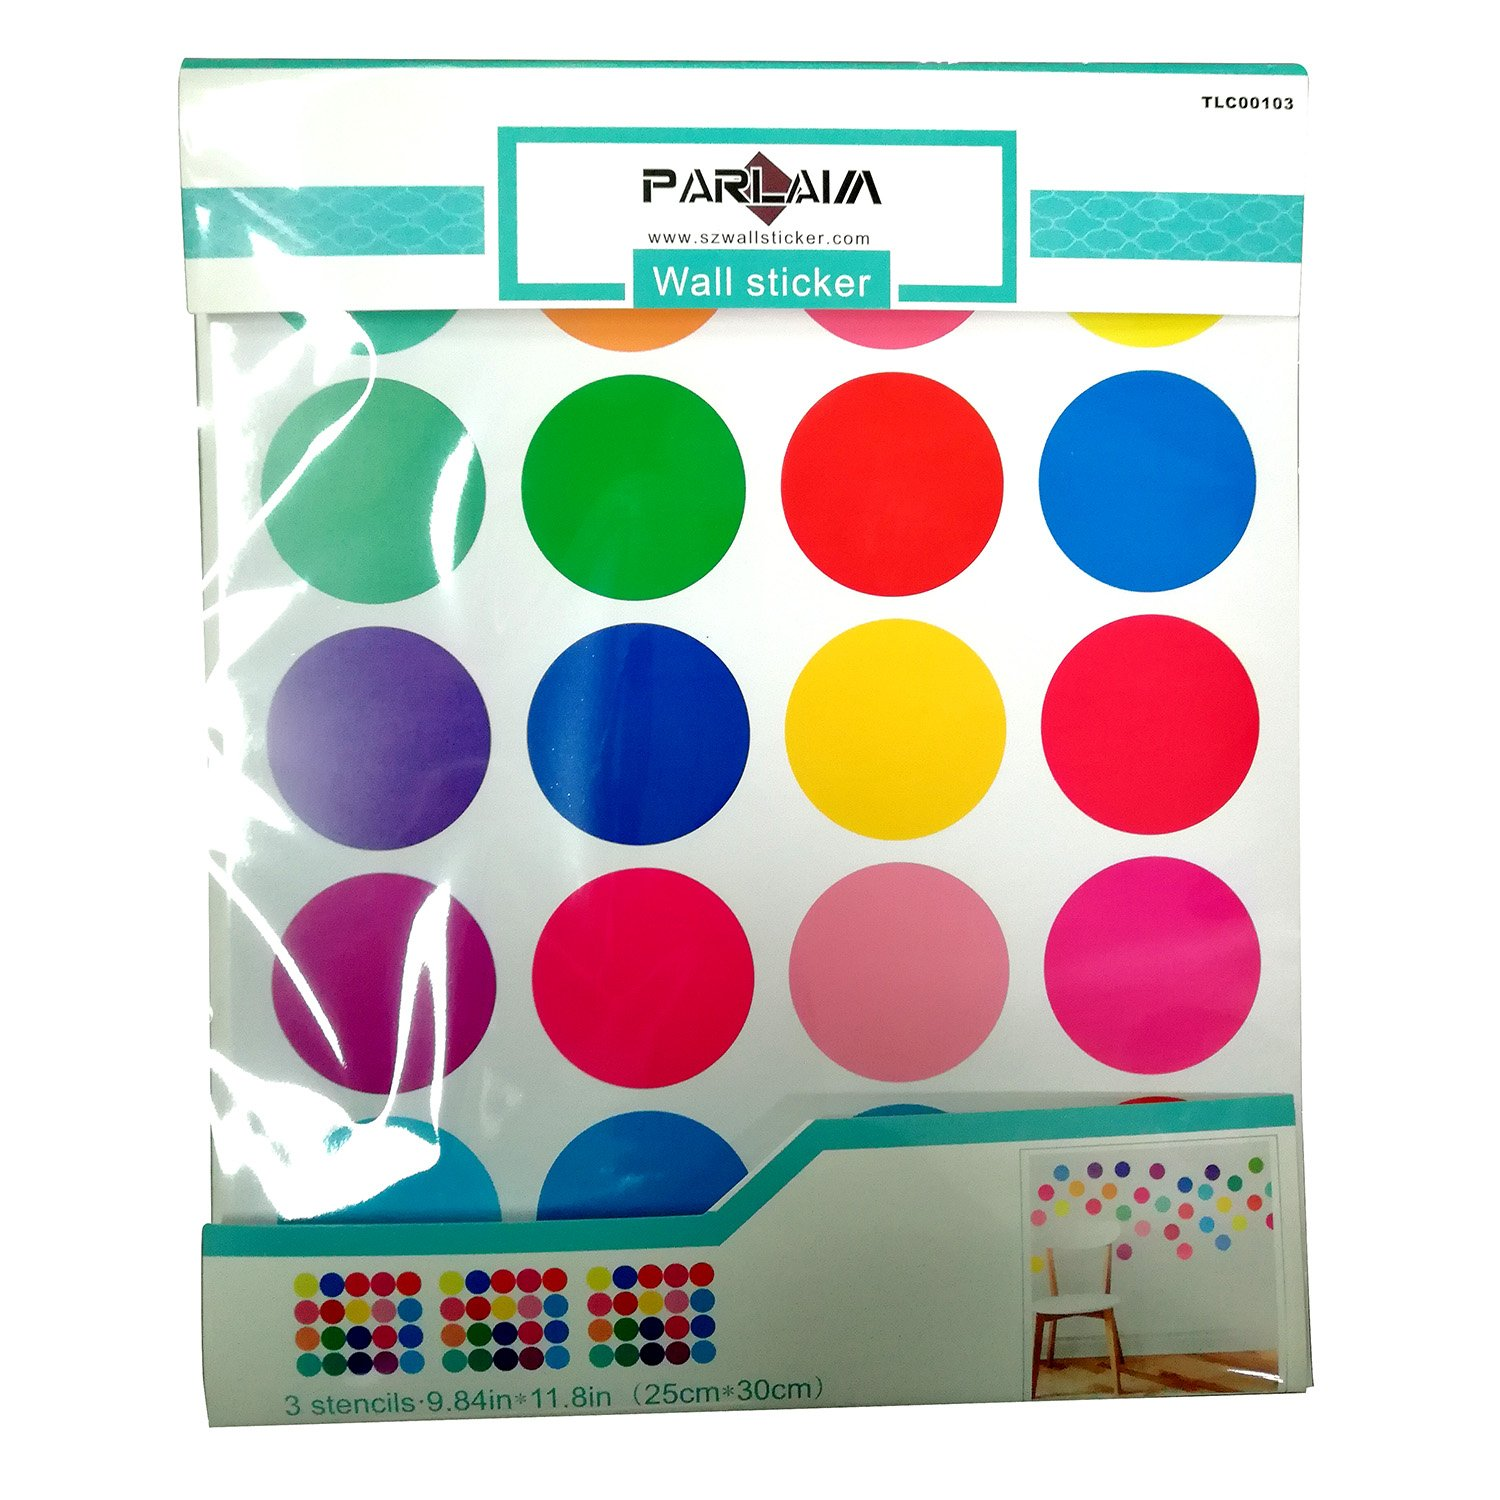 PARLAIM 0103 Rainbow of Colors Polka Dot Wall Decals Multicolor,2 inch x 60 Circles TianLiCheng Peel and Stick Wall Stickers with Gift Packaging for Kids Room,Living Room,Bedroom